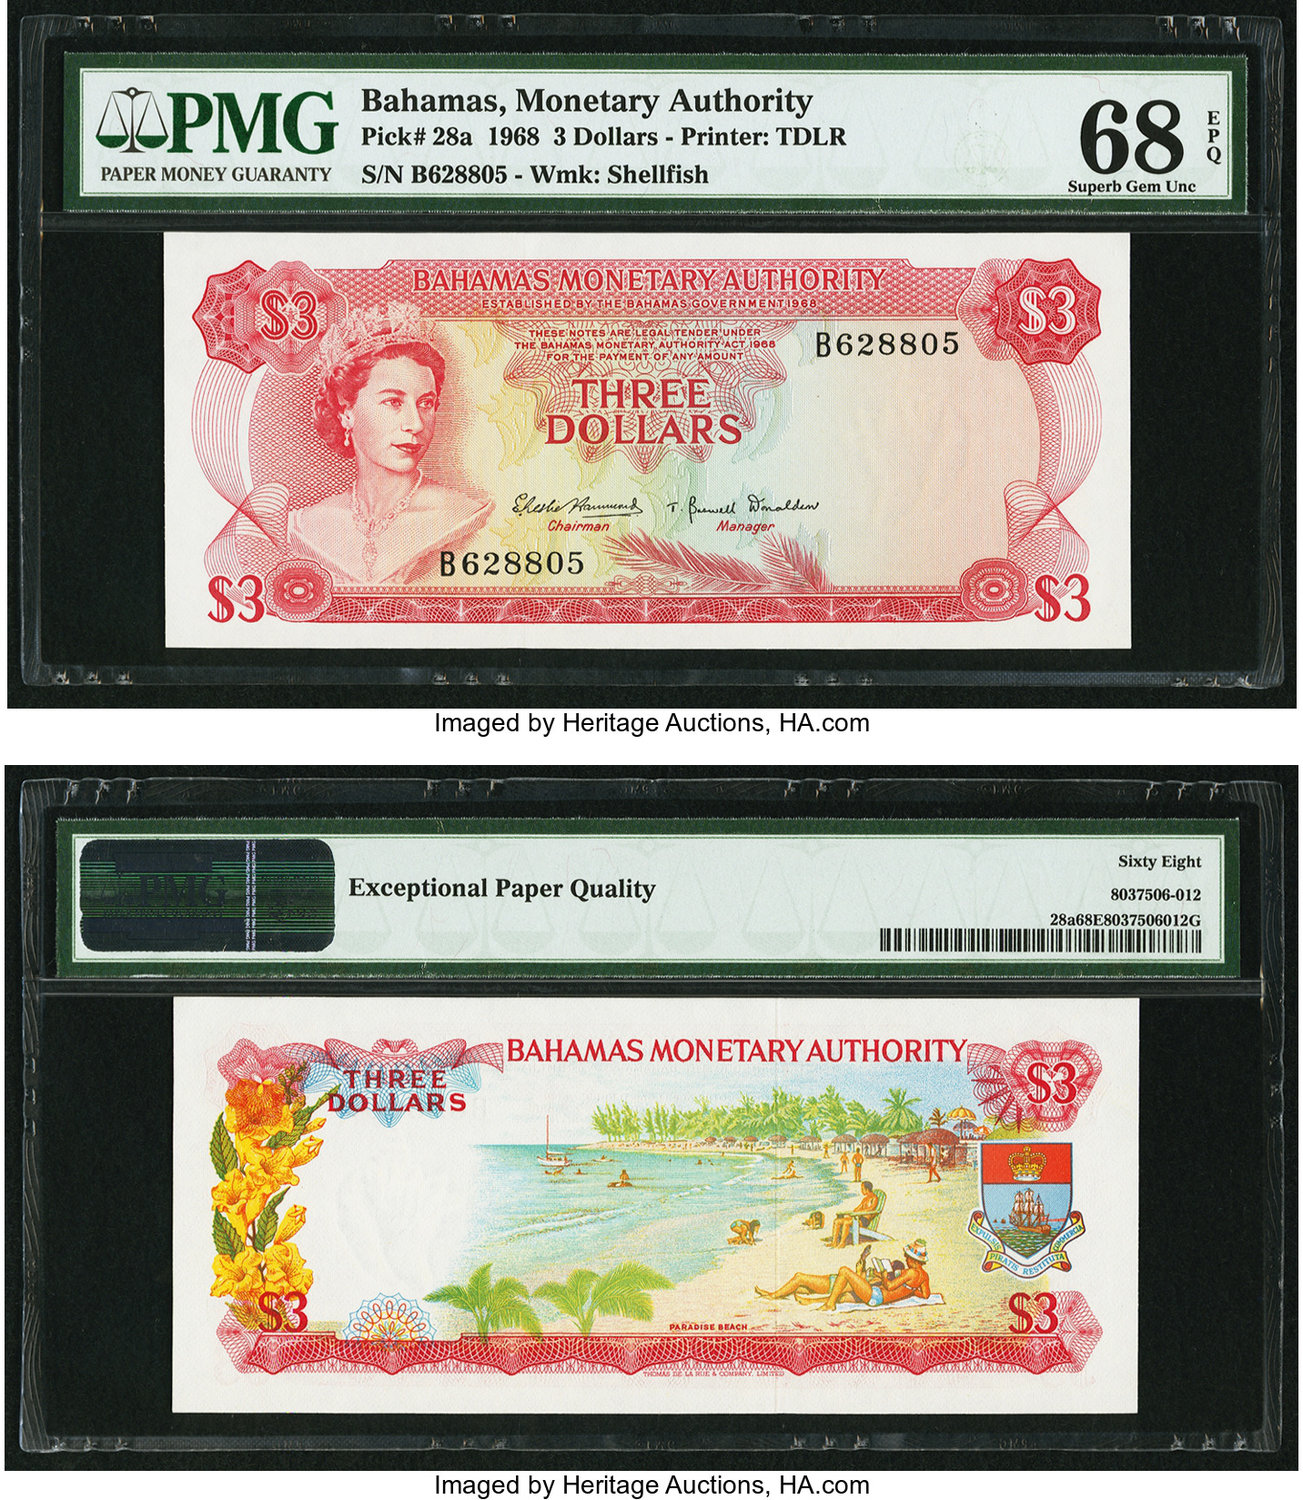 World Currency Bahamas Monetary Authority 3 1968 Pick 28a The Highest Graded At Pmg Superb Gem Unc 68 Epq